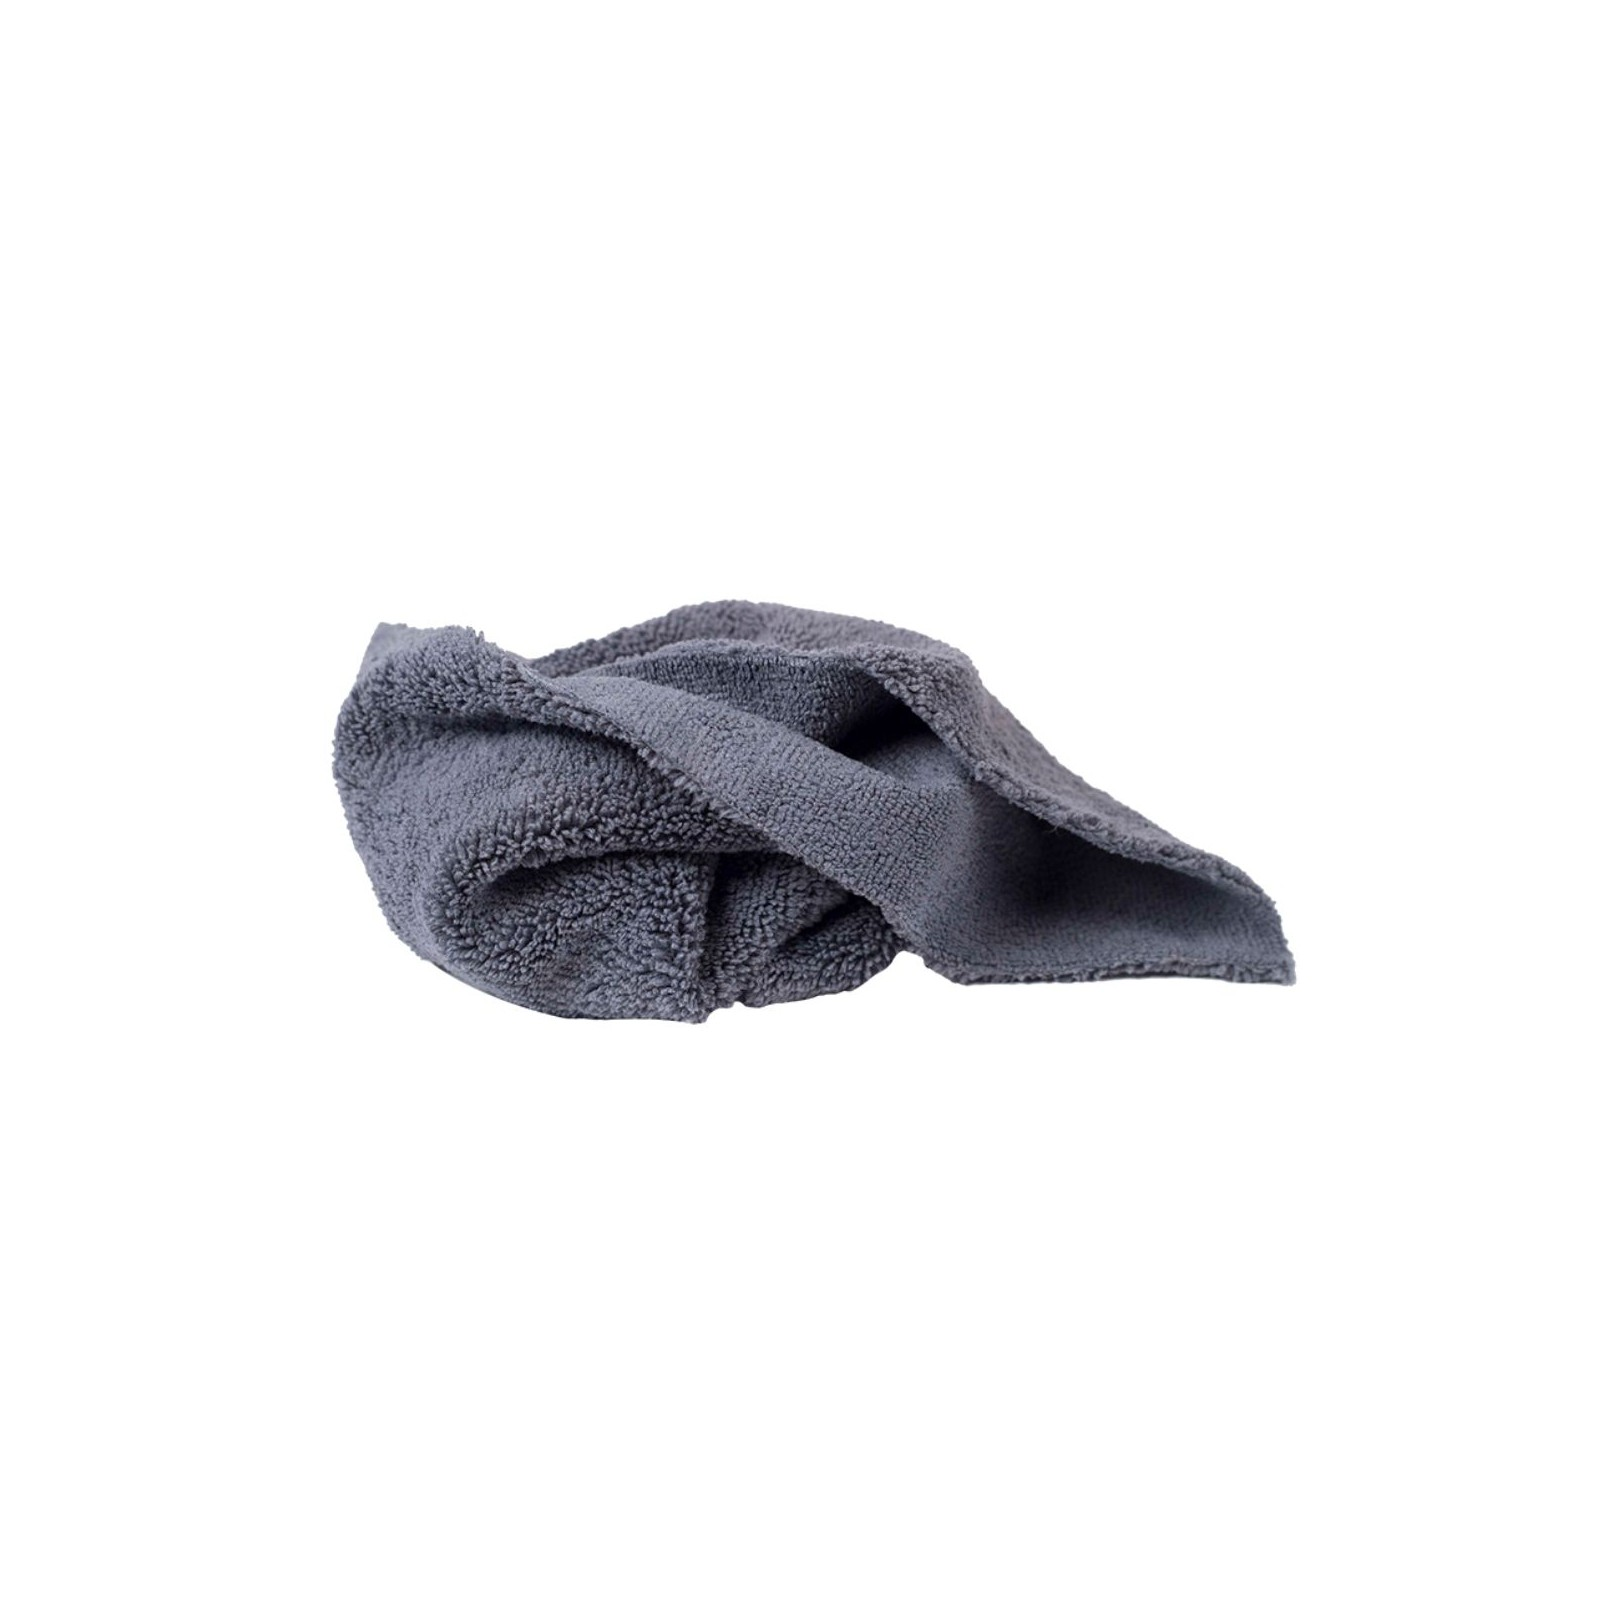 Microfiber Ultra-Soft Cloths - Anthracite